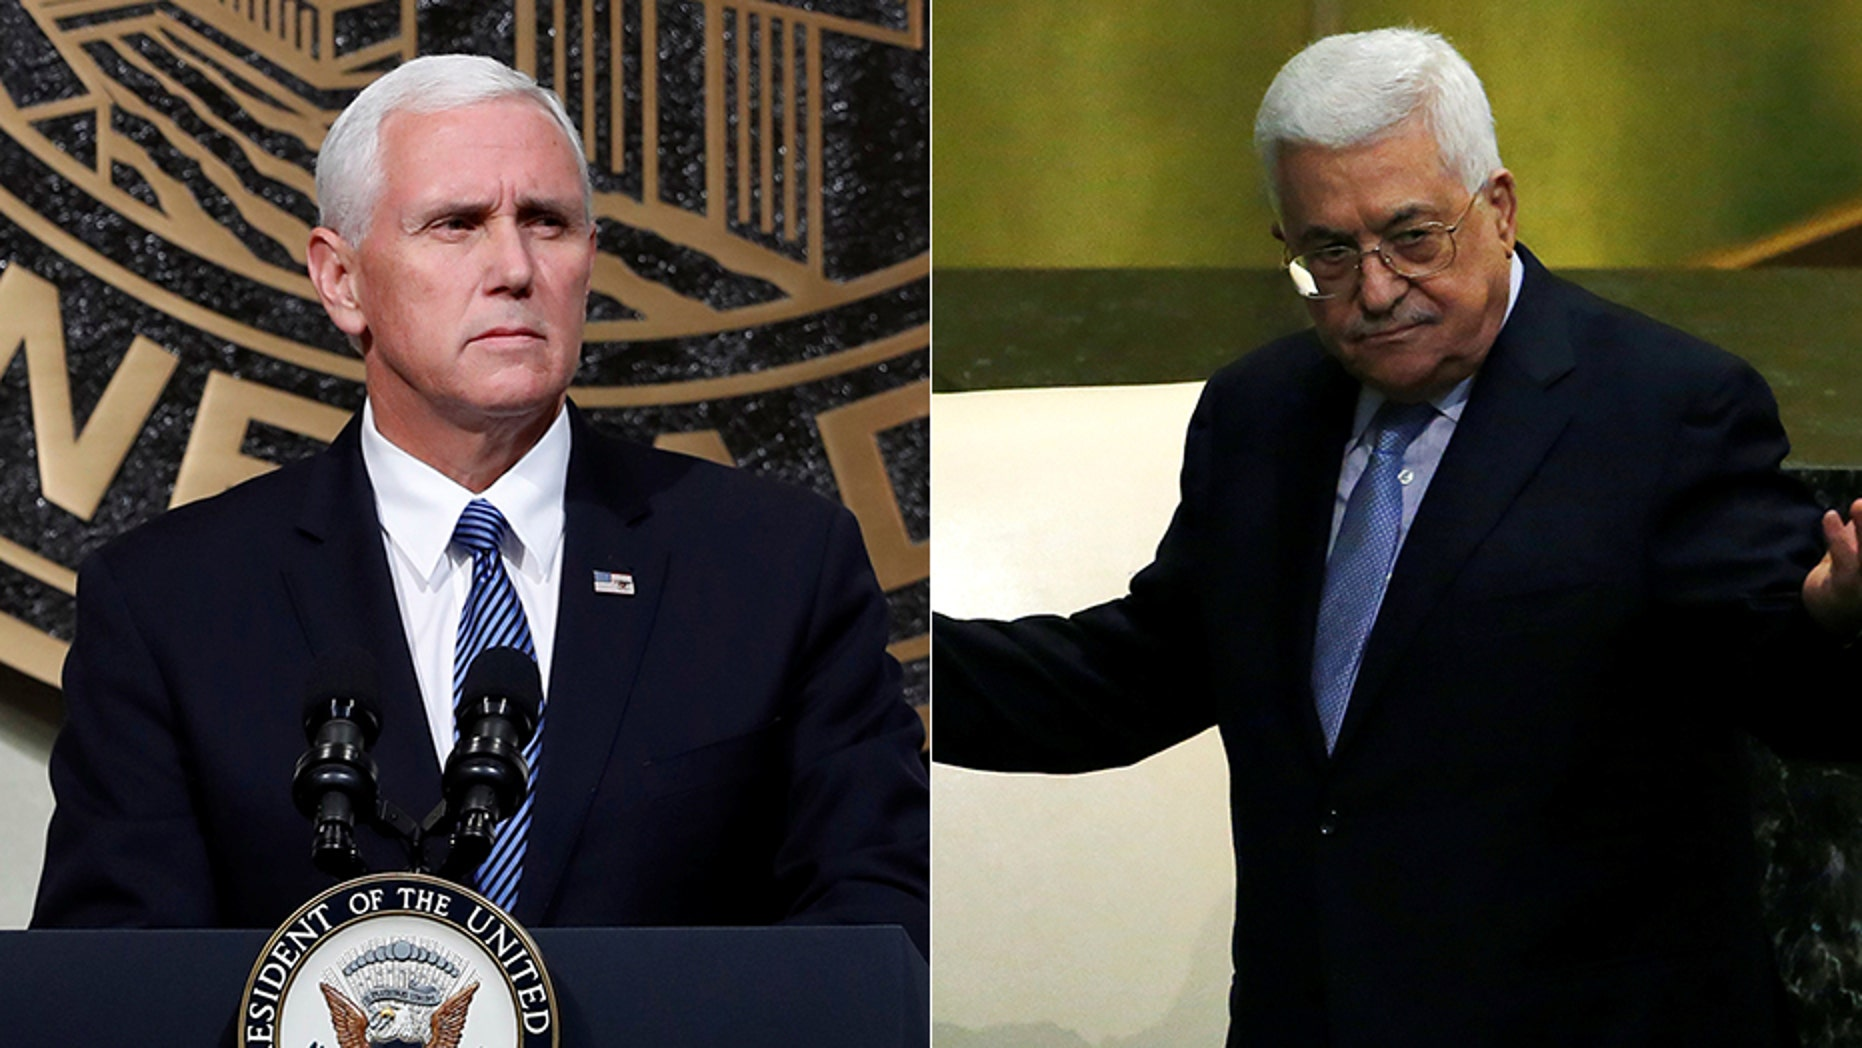 Palestinian leader Mahmoud Abbas canceled plans to meet with Vice President Mike Pence later this month.